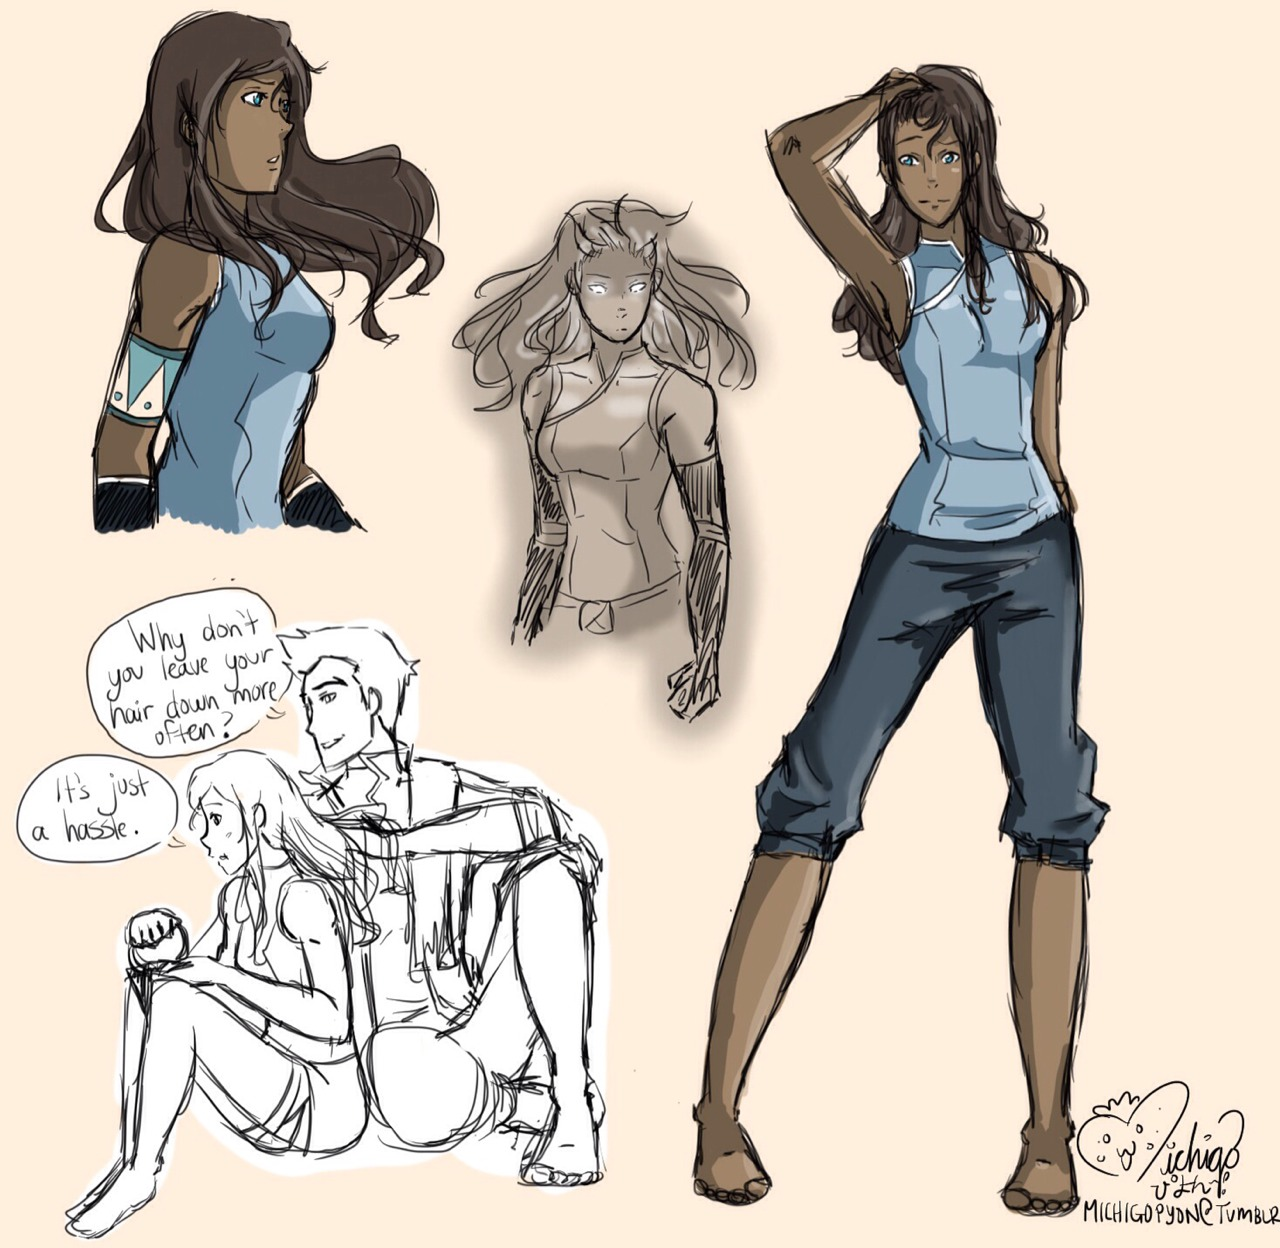 Pin By Mariana Nunes Rodrigues On Avatar The Last Airbender The Legends Of Korra Avatar Legend Of Aang Korra Avatar Avatar Aang